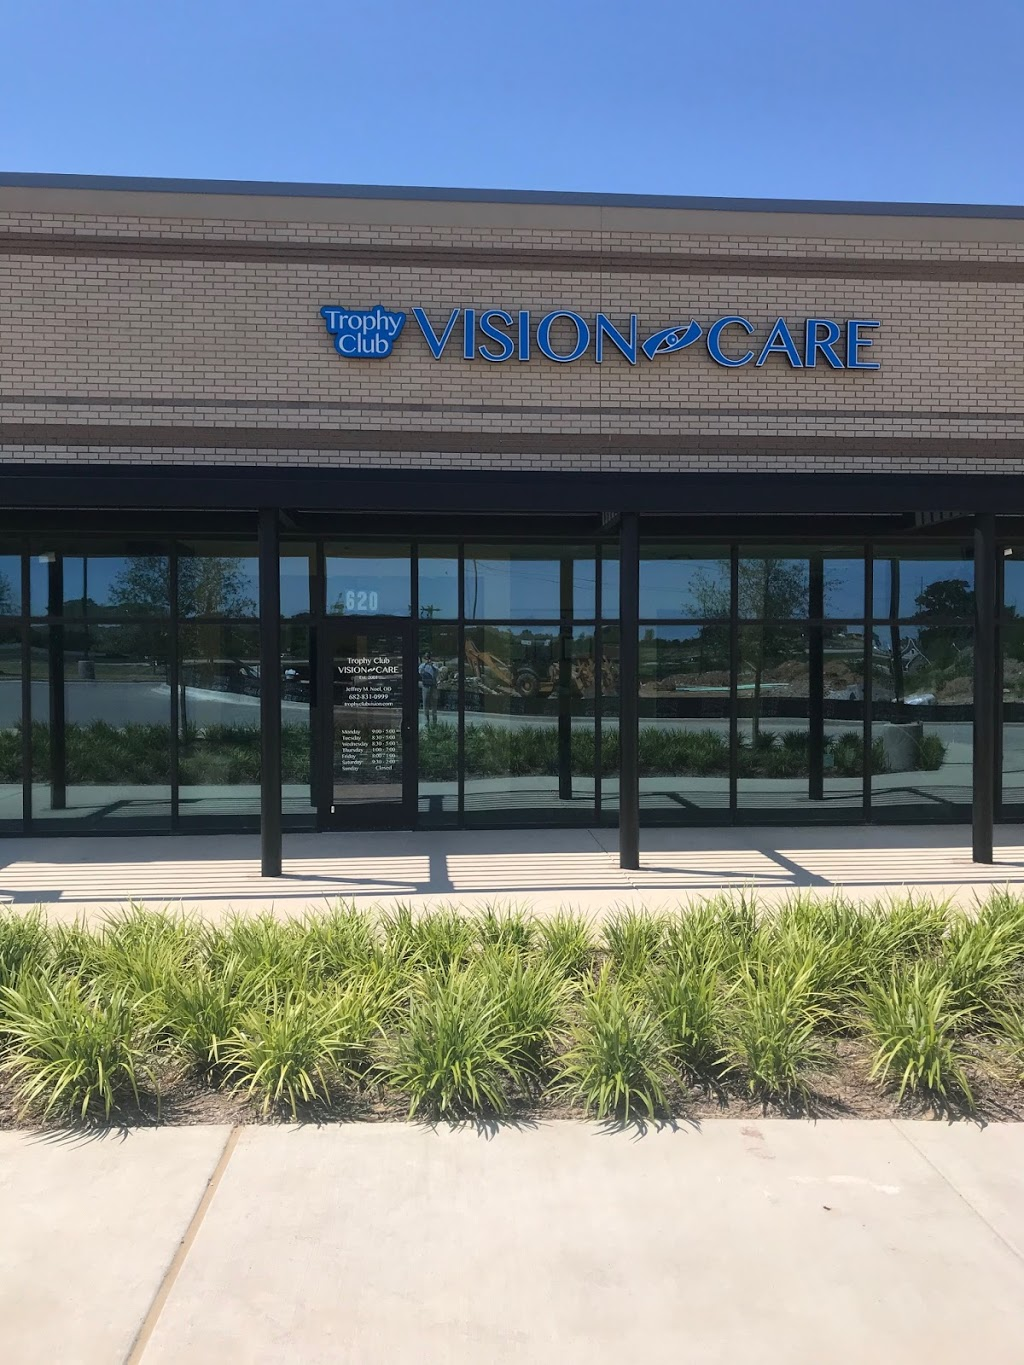 Trophy Club Vision Care - health  | Photo 2 of 4 | Address: 2240 TX-114 Suite 620, Trophy Club, TX 76262, USA | Phone: (682) 831-0999